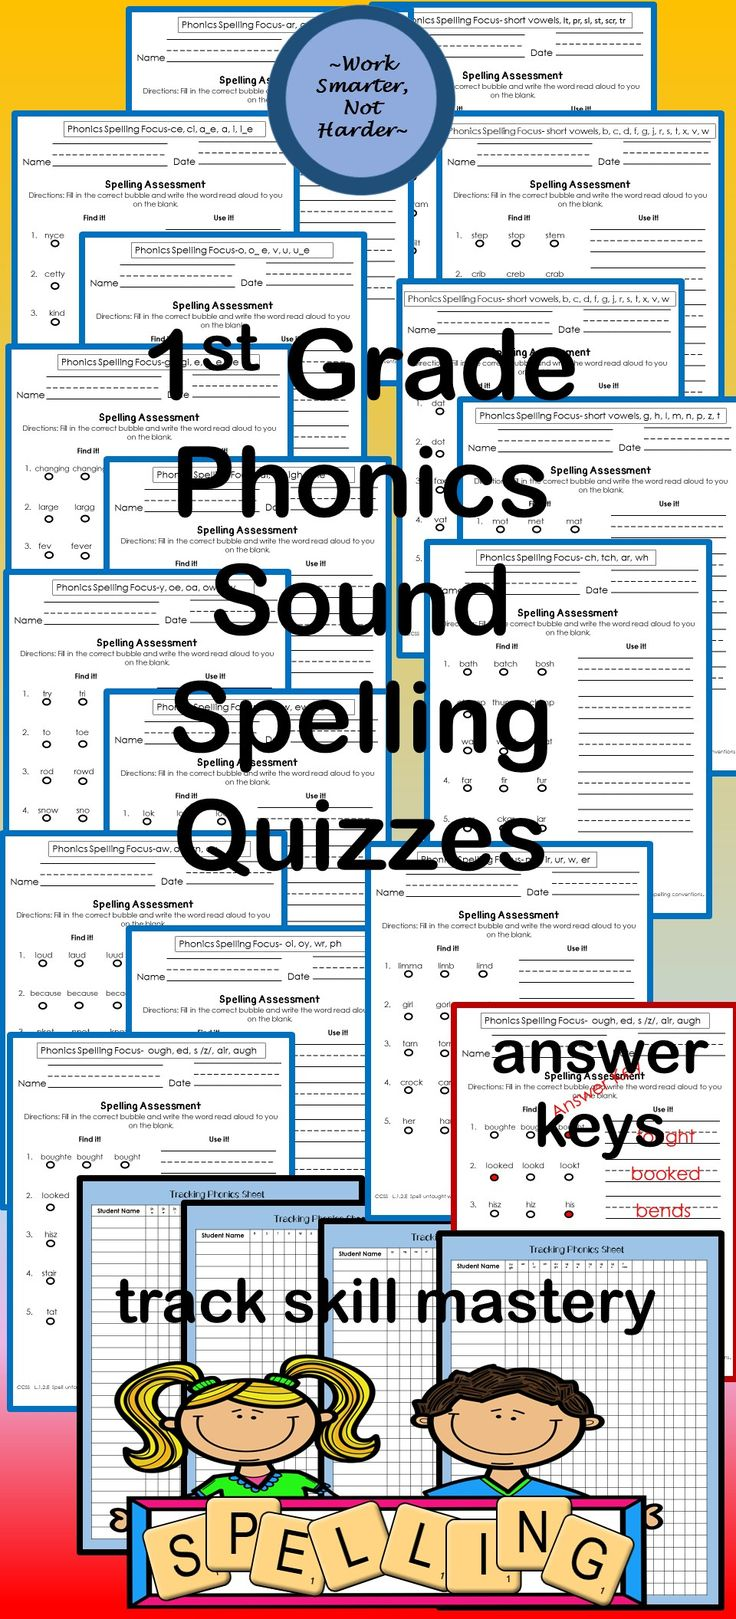 Worksheet Spelling On Line 17 best ideas about spelling quizzes on pinterest games online word spell check and grammar online